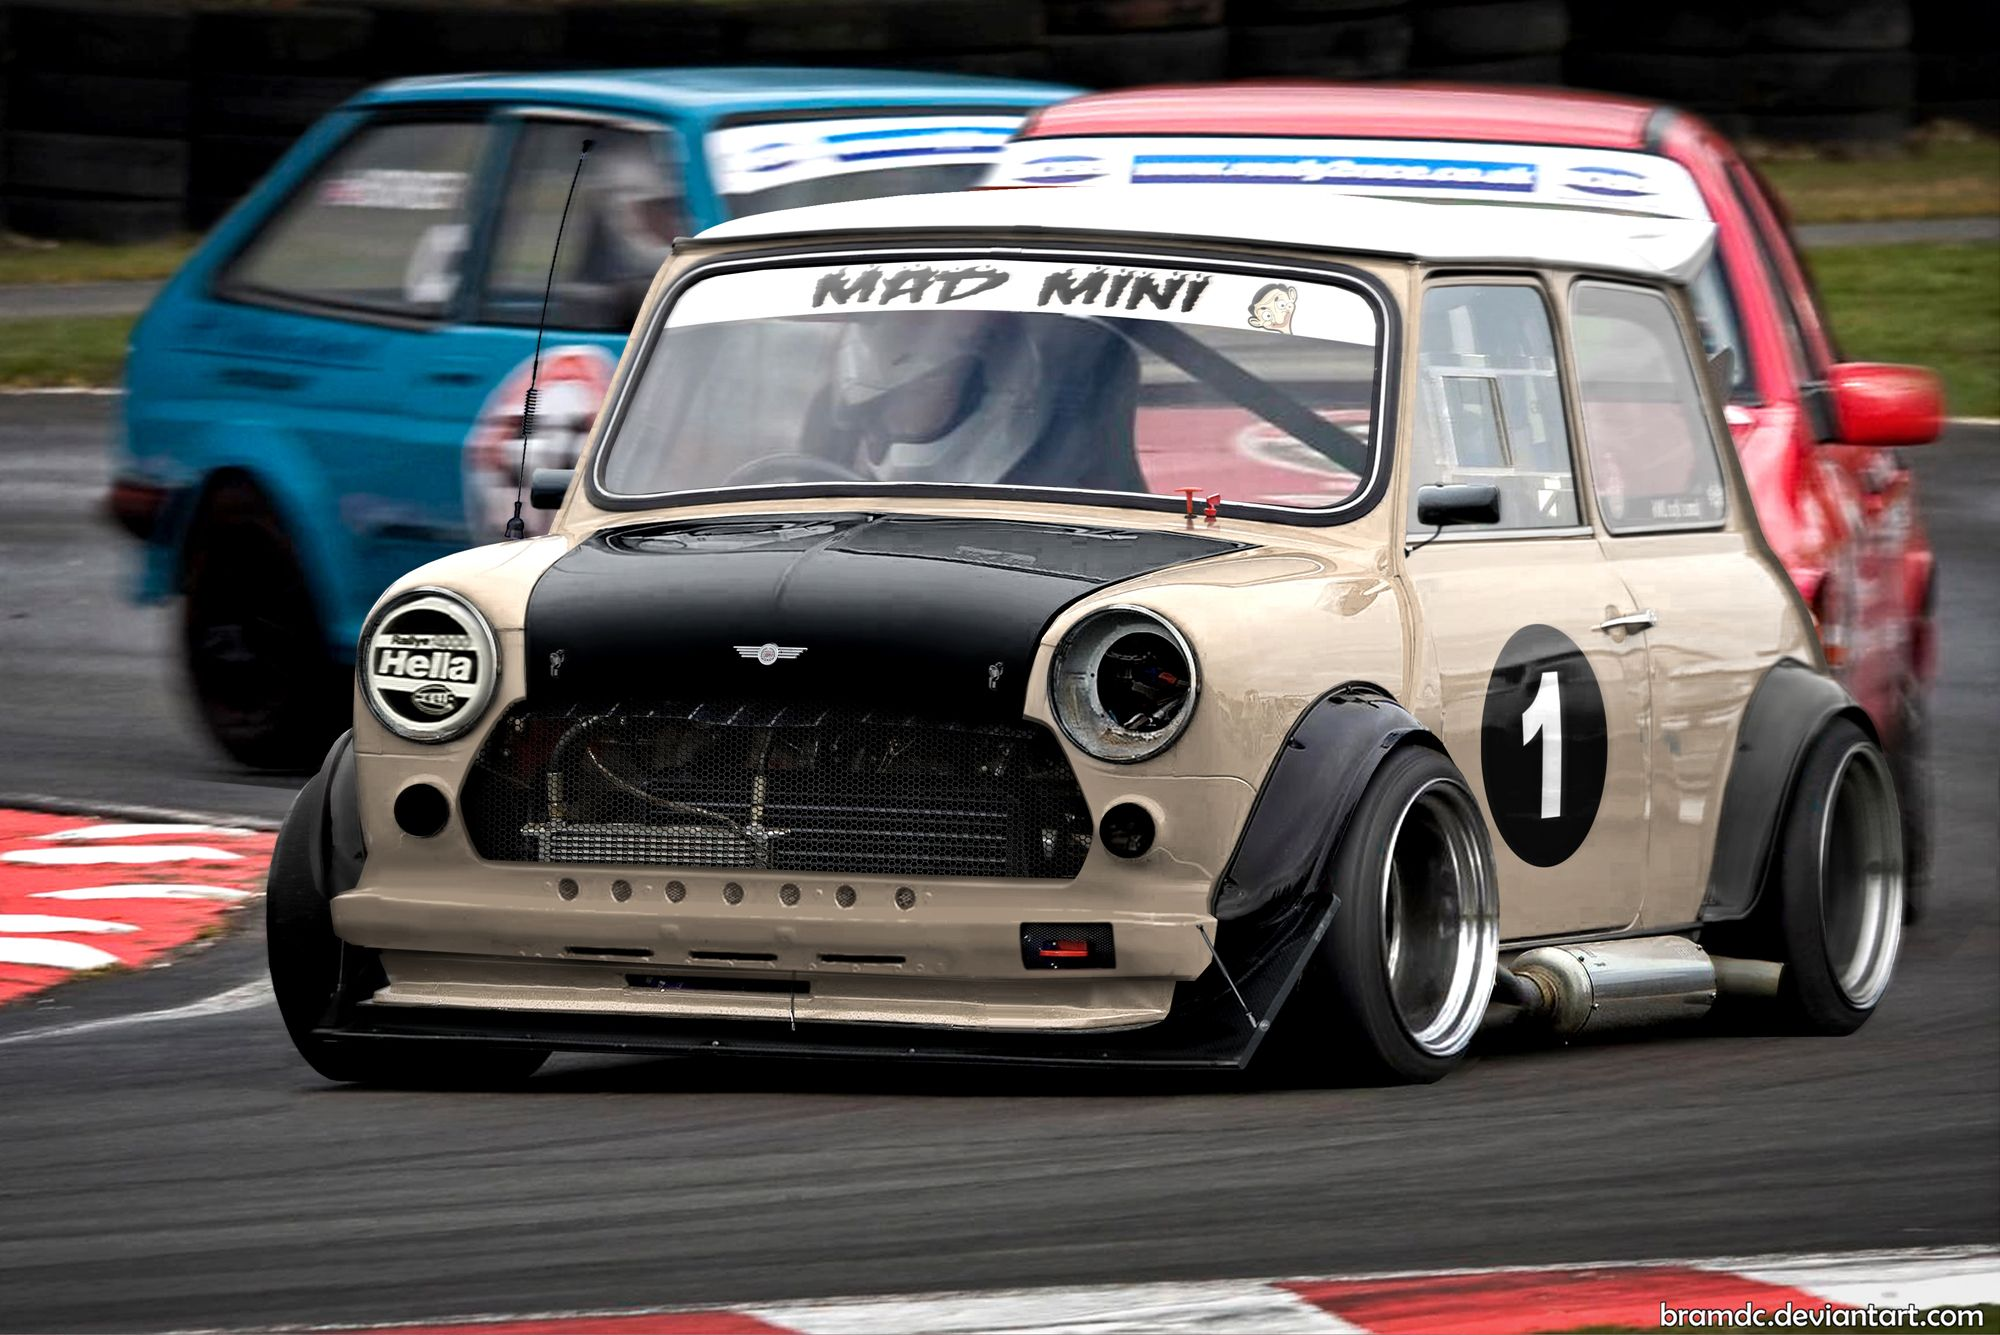 Track mini anyone? | Automotive | Pinterest | Classic mini ...